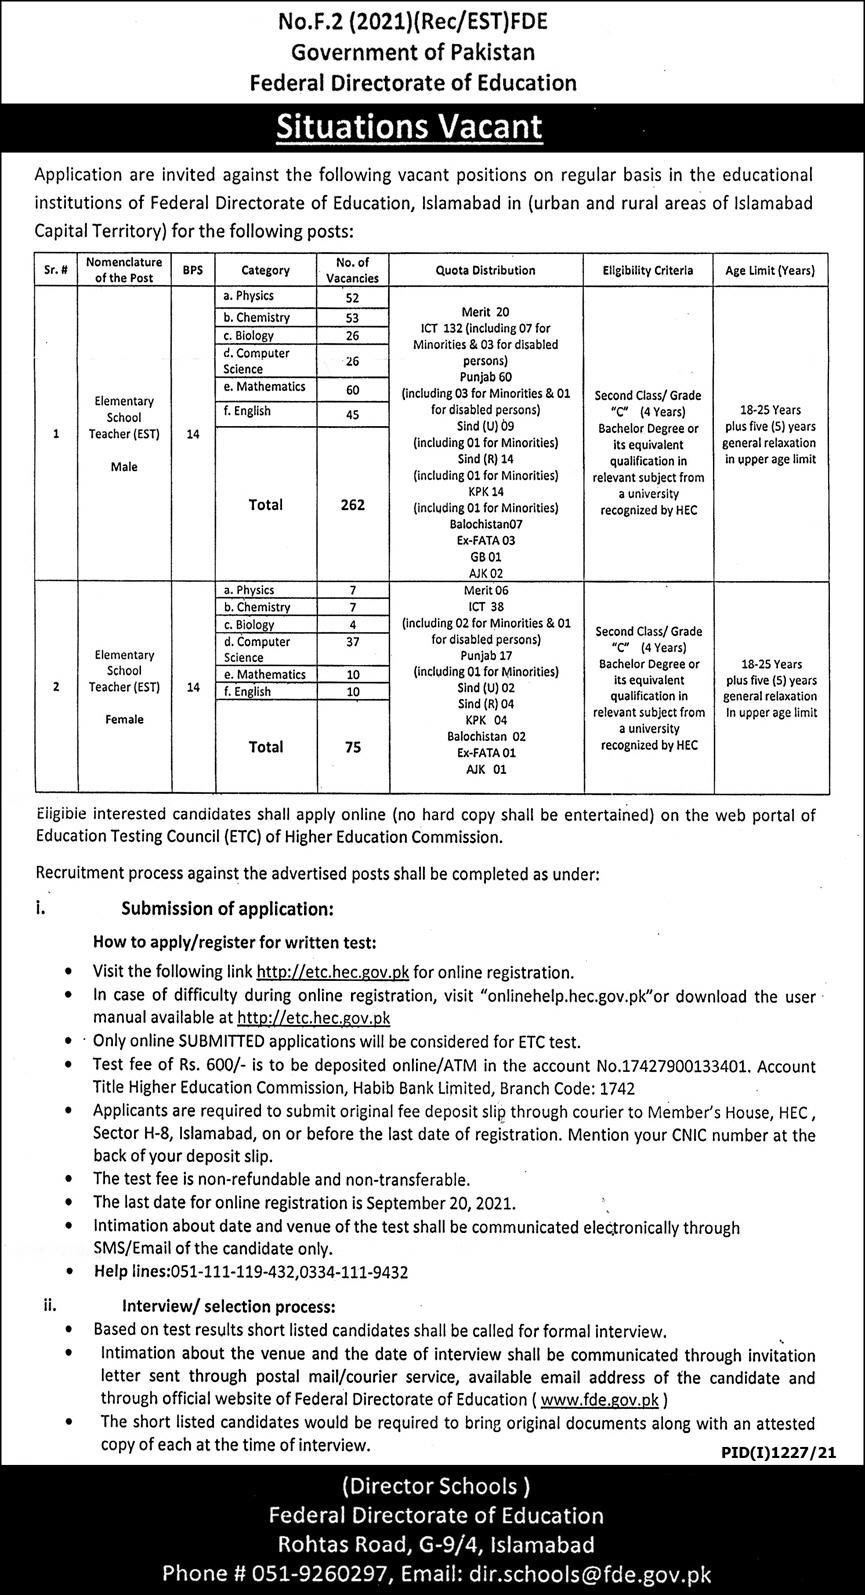 Govt Teaching Jobs in Pakistan 2021 Today At Federal Directorate Education